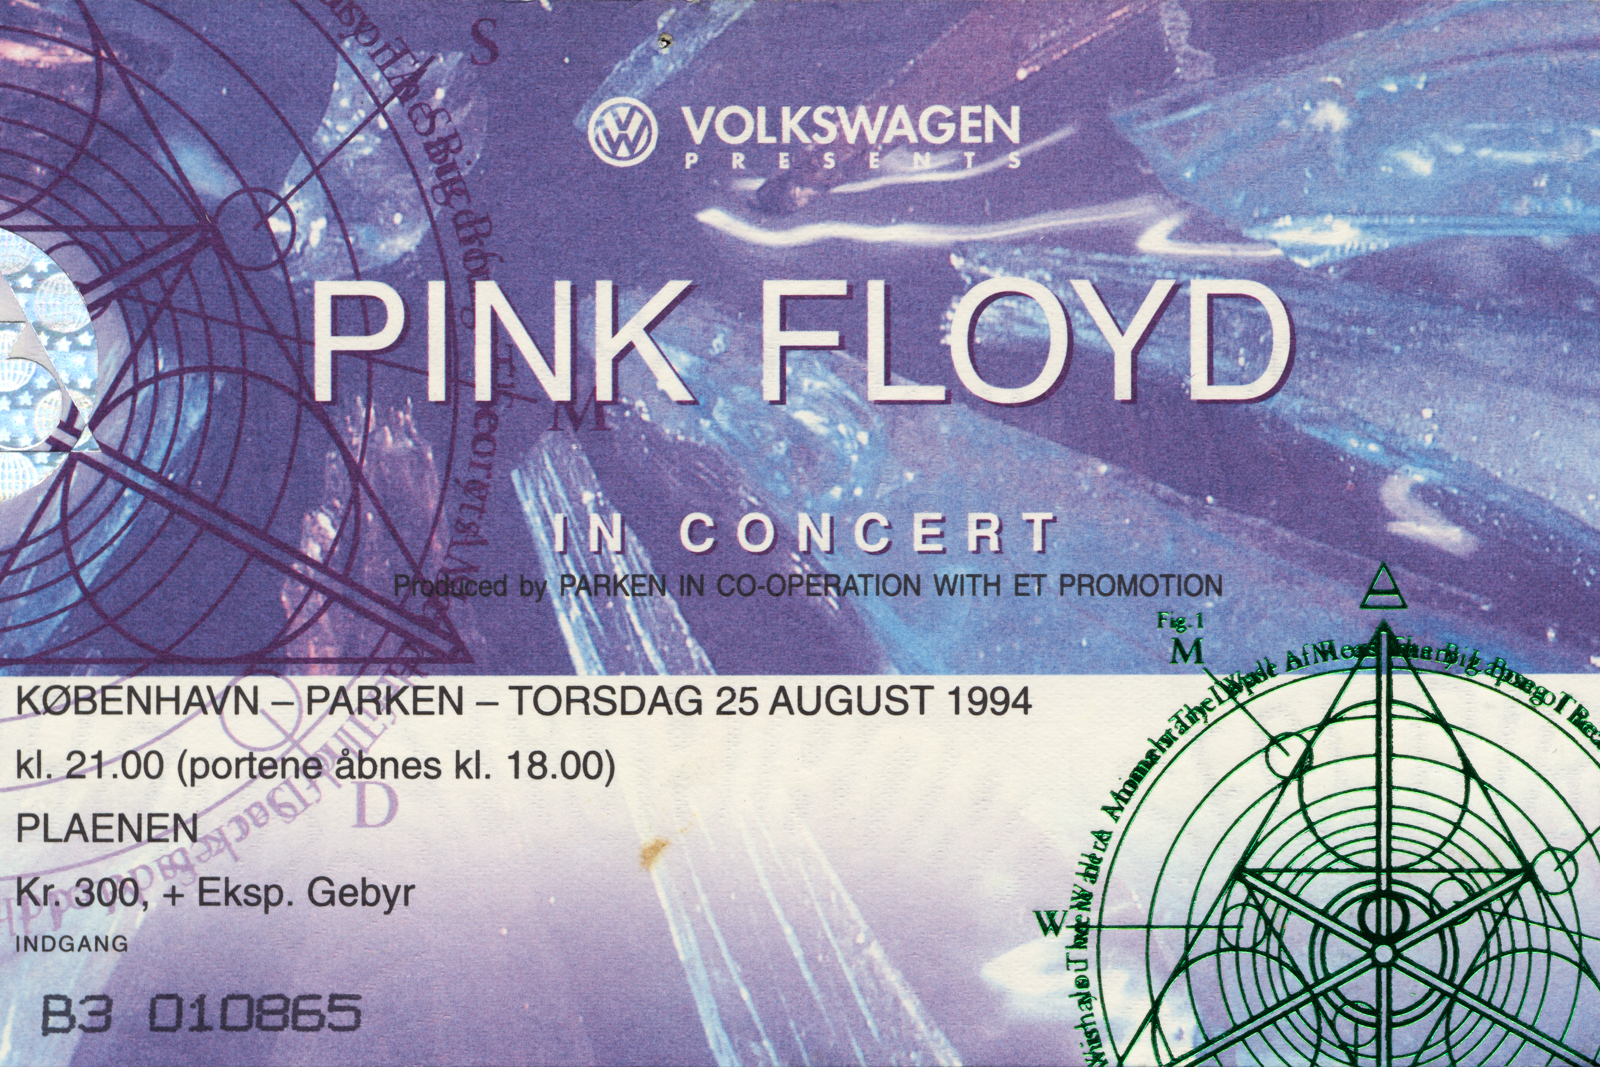 Ticket from the Pink Floyd concert in Parken Stadium on August 25th, 1994.